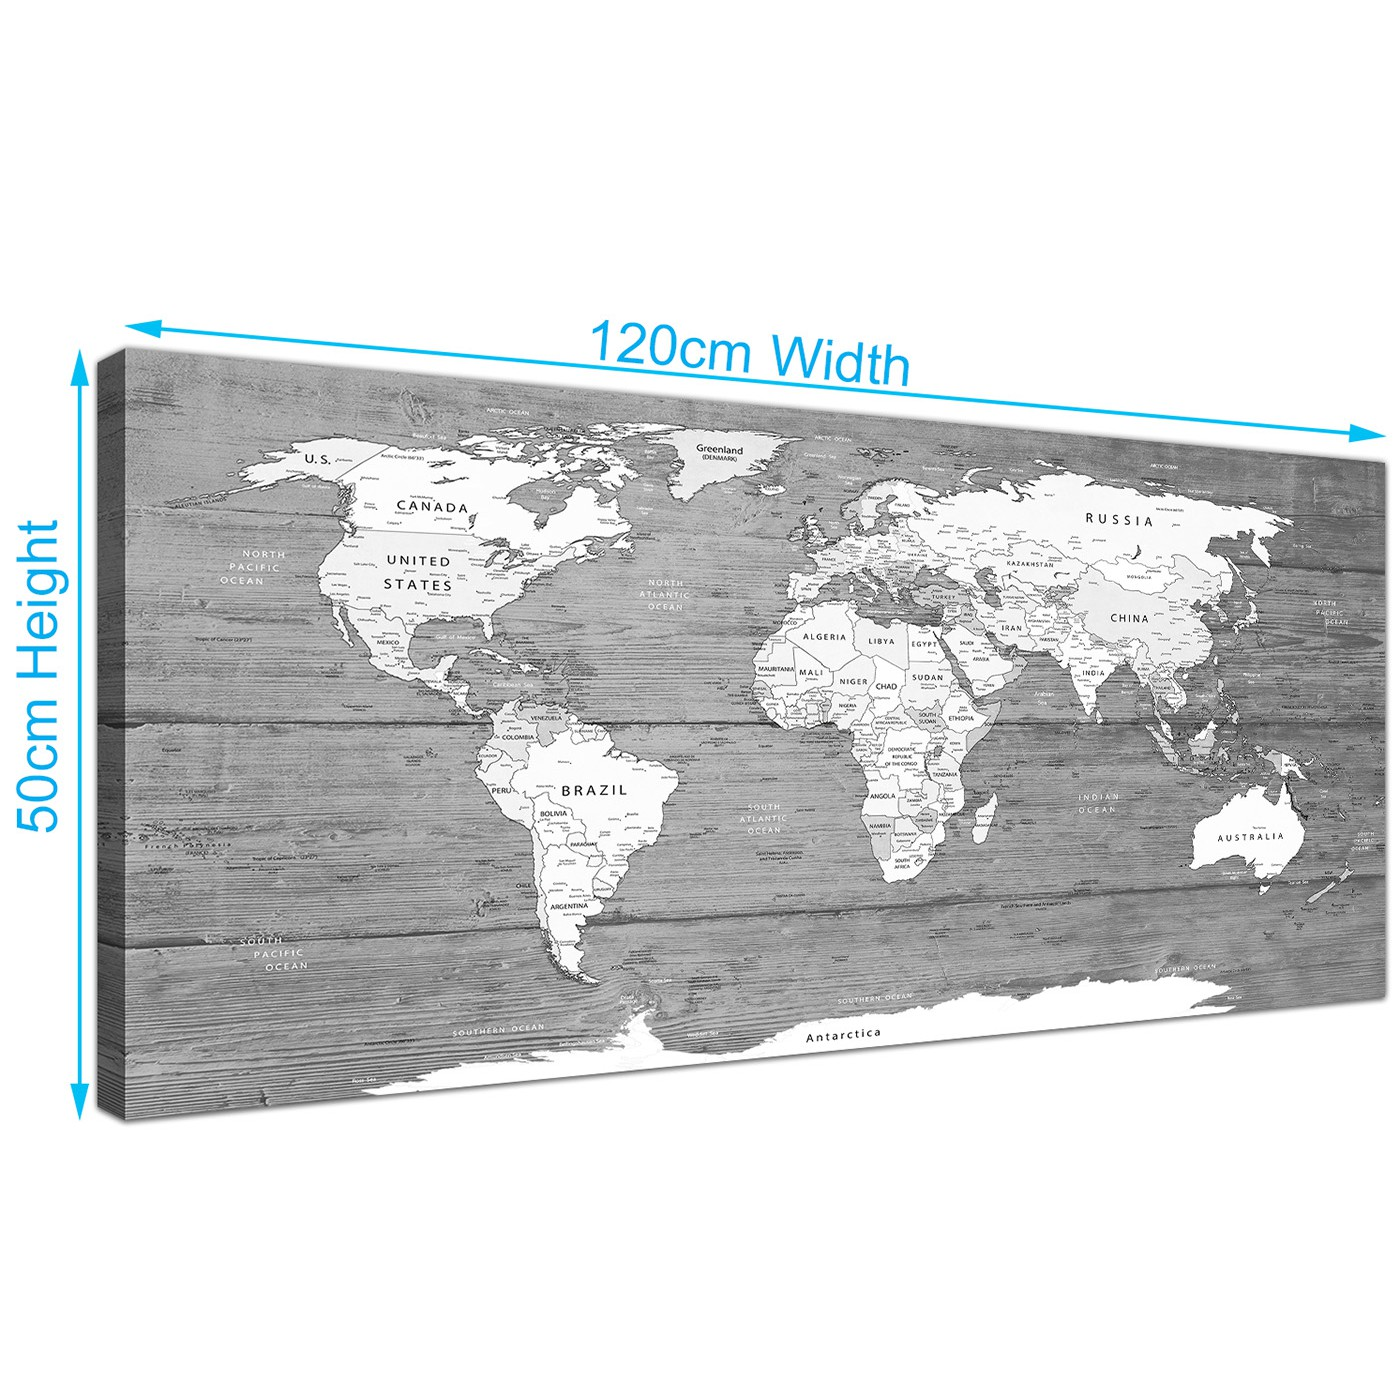 Large black white map of world atlas canvas wall art print display gallery item 3 gumiabroncs Gallery